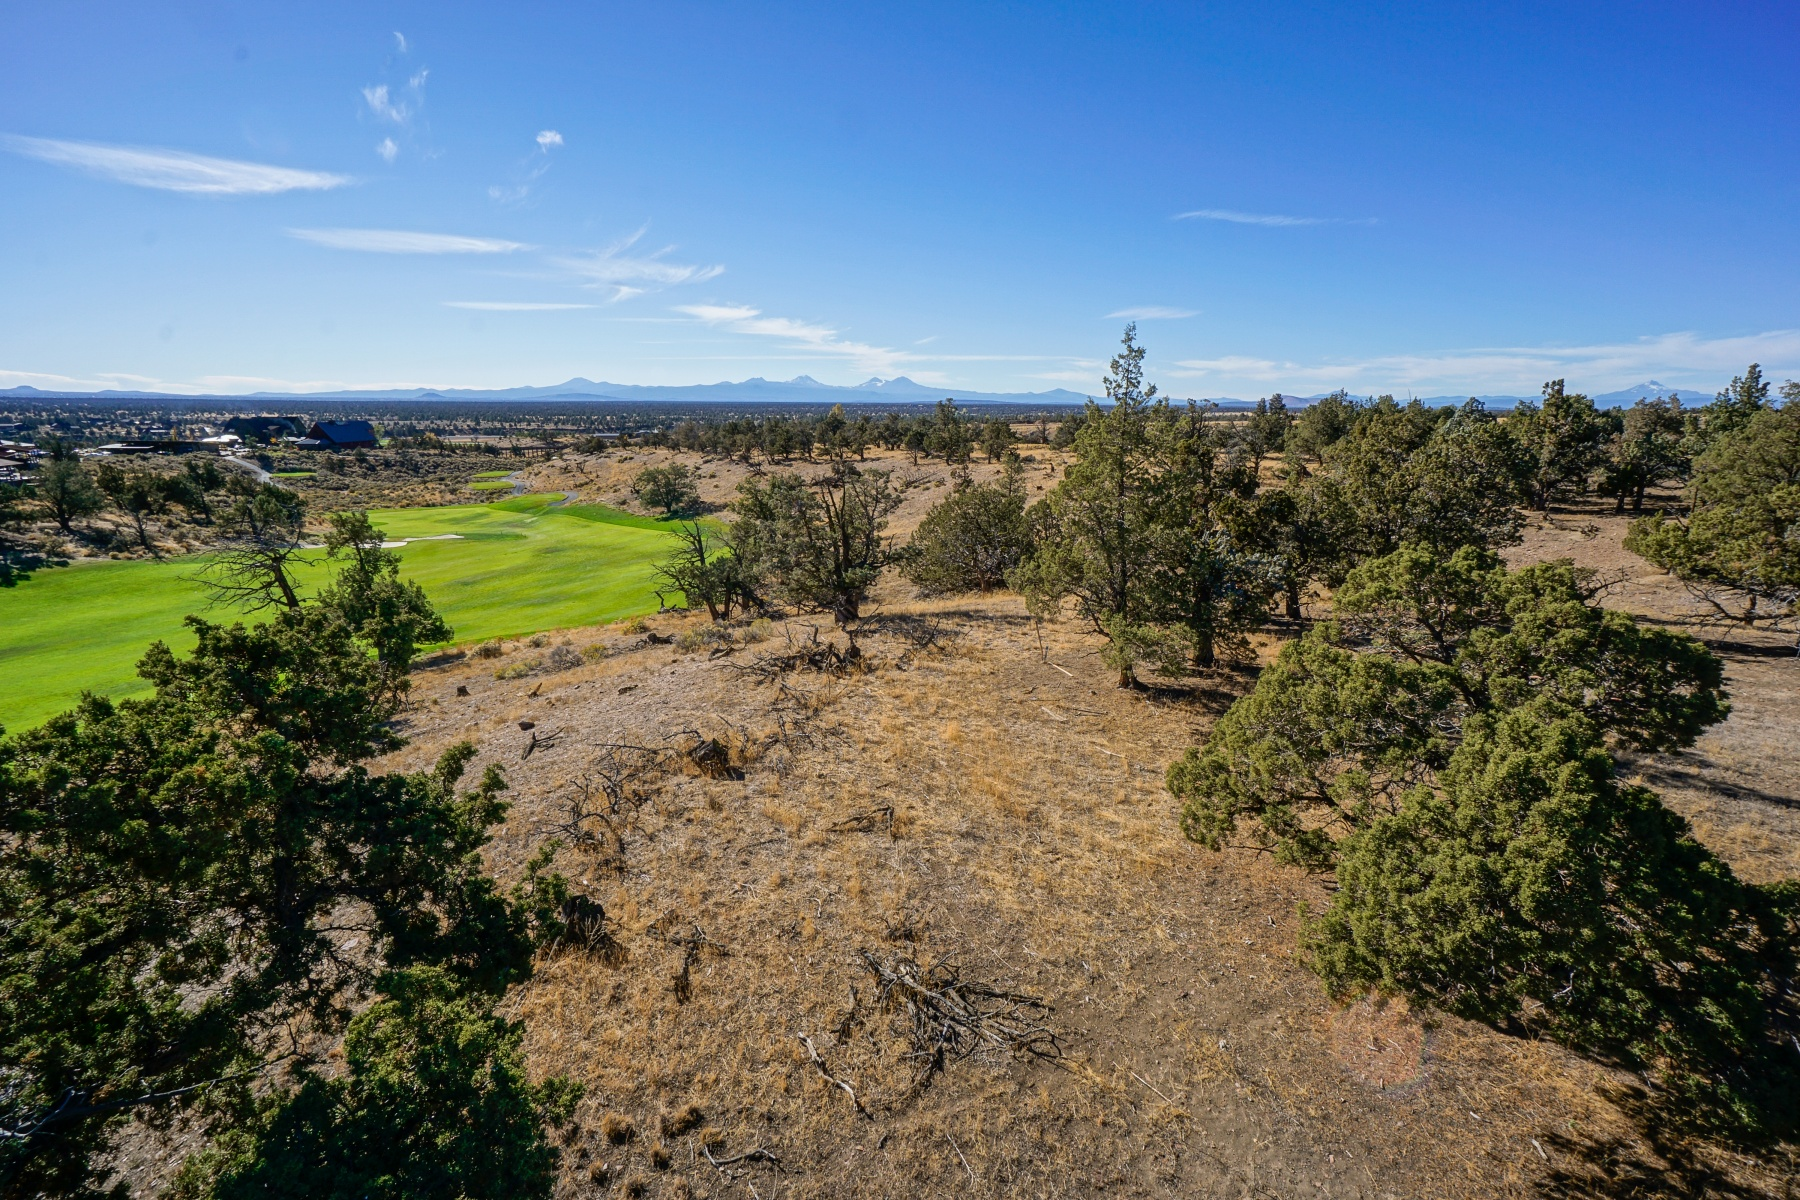 Land for Sale at Golf Course and Mtn View Building Site in Brasada 15720 SW Wooden Trestle Ct Lot 25 Powell Butte, Oregon, 97753 United States